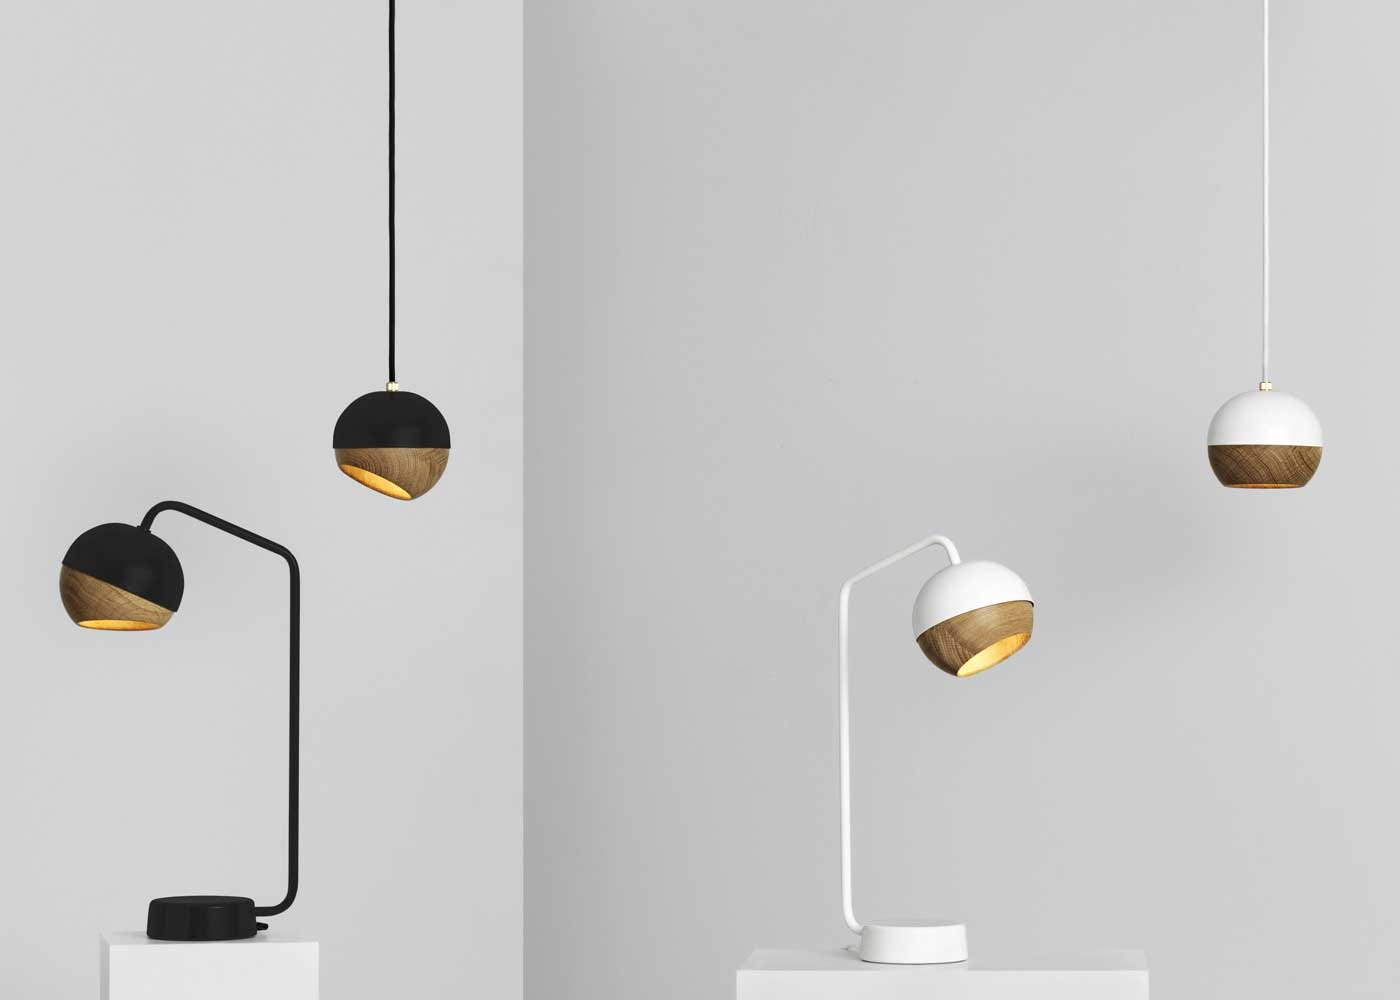 As shown: Ray lighting collection.